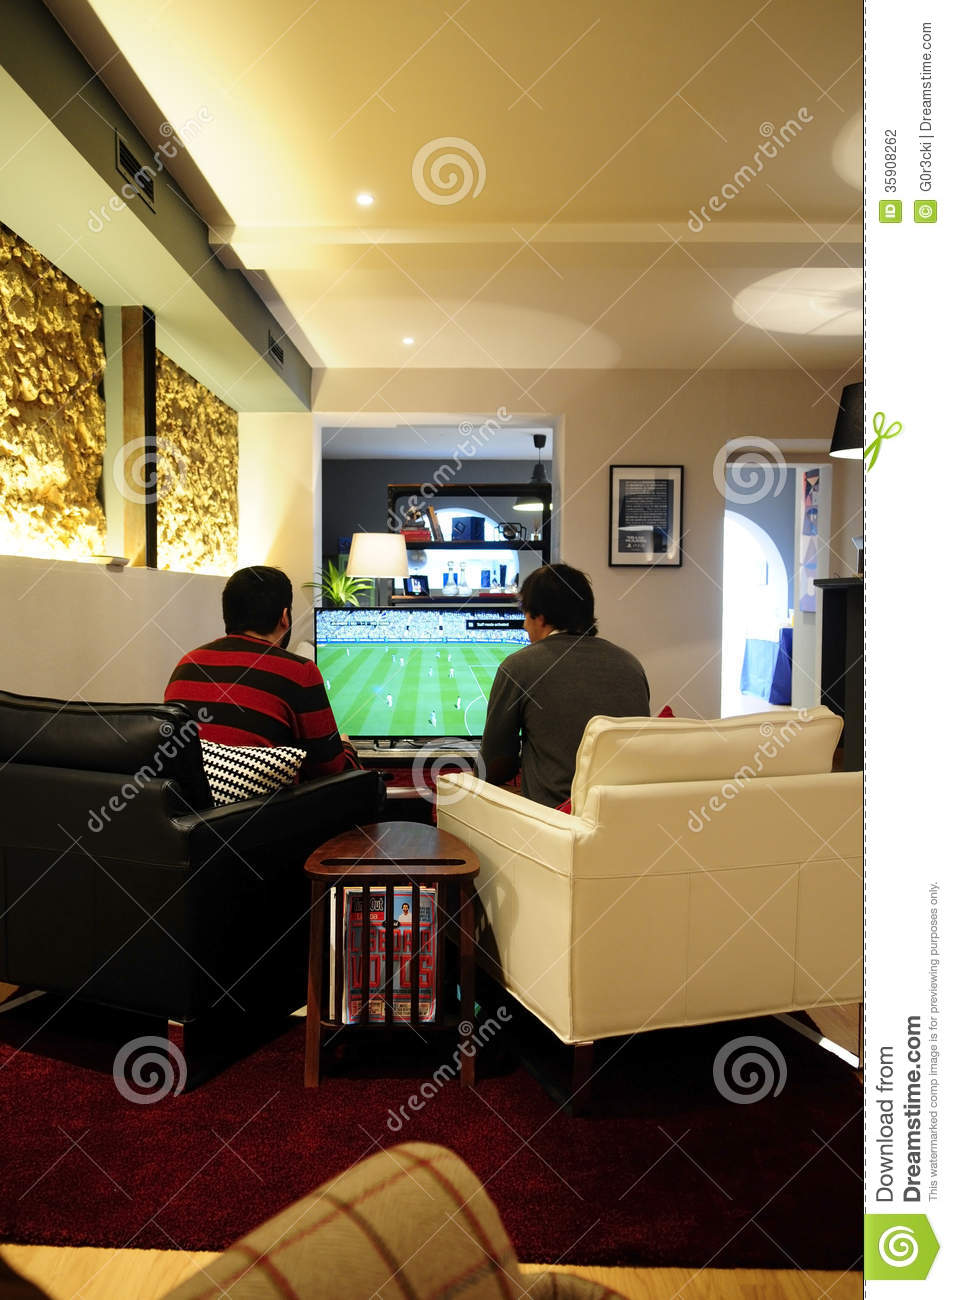 Where Can I Buy German Food In England: Young Men Playing FIFA